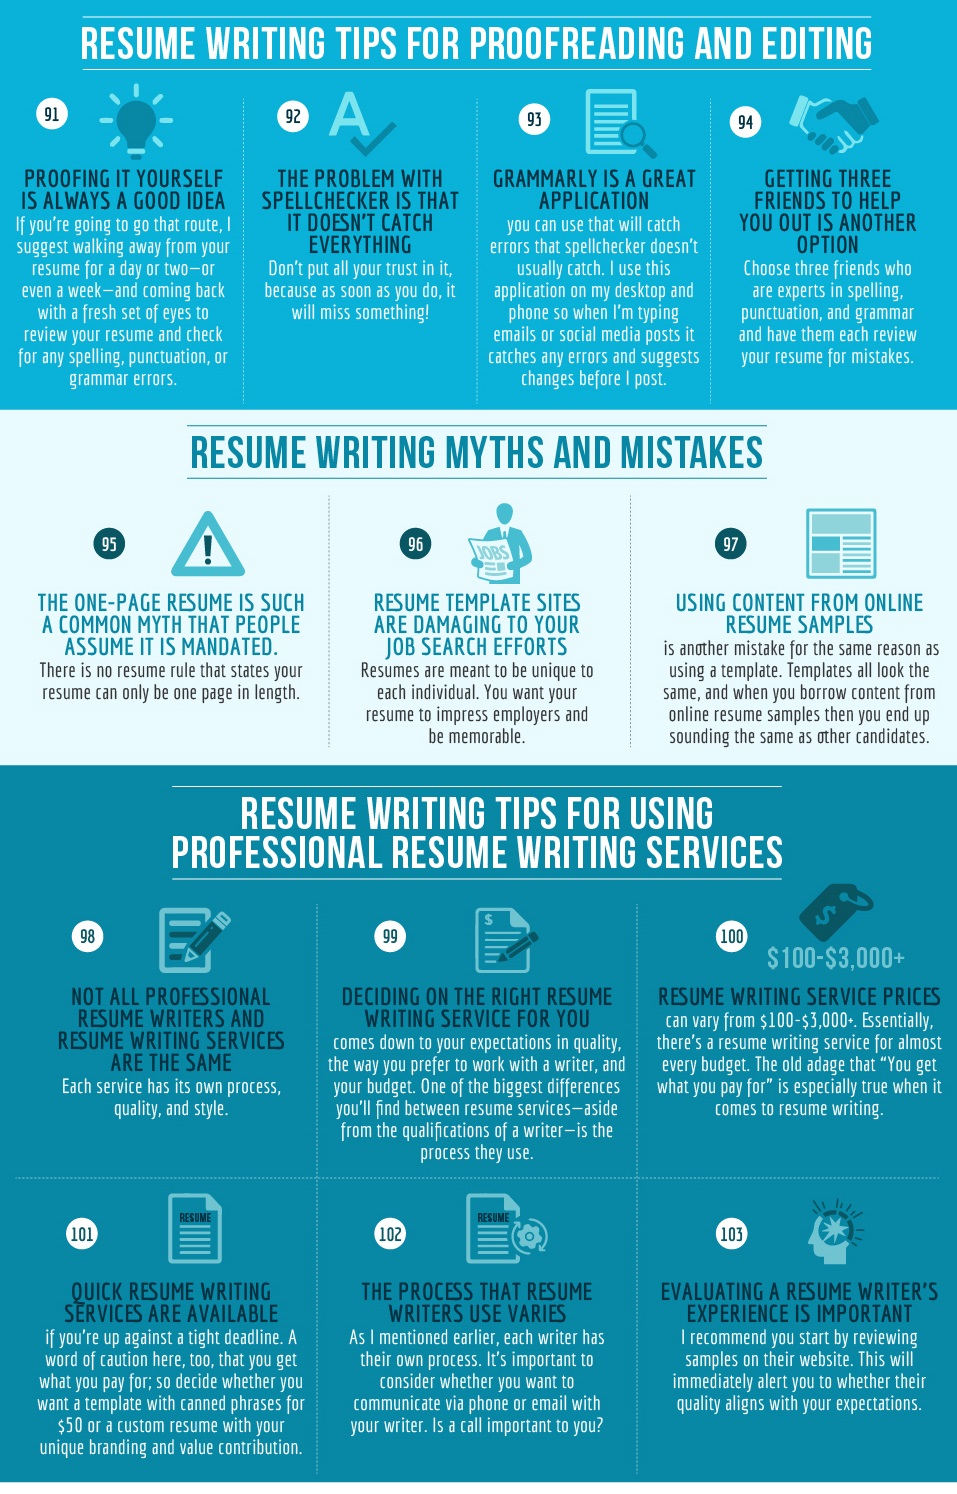 tips for writing good cv february one on resume service infographic image kitchen utility Resume One On One Resume Writing Service